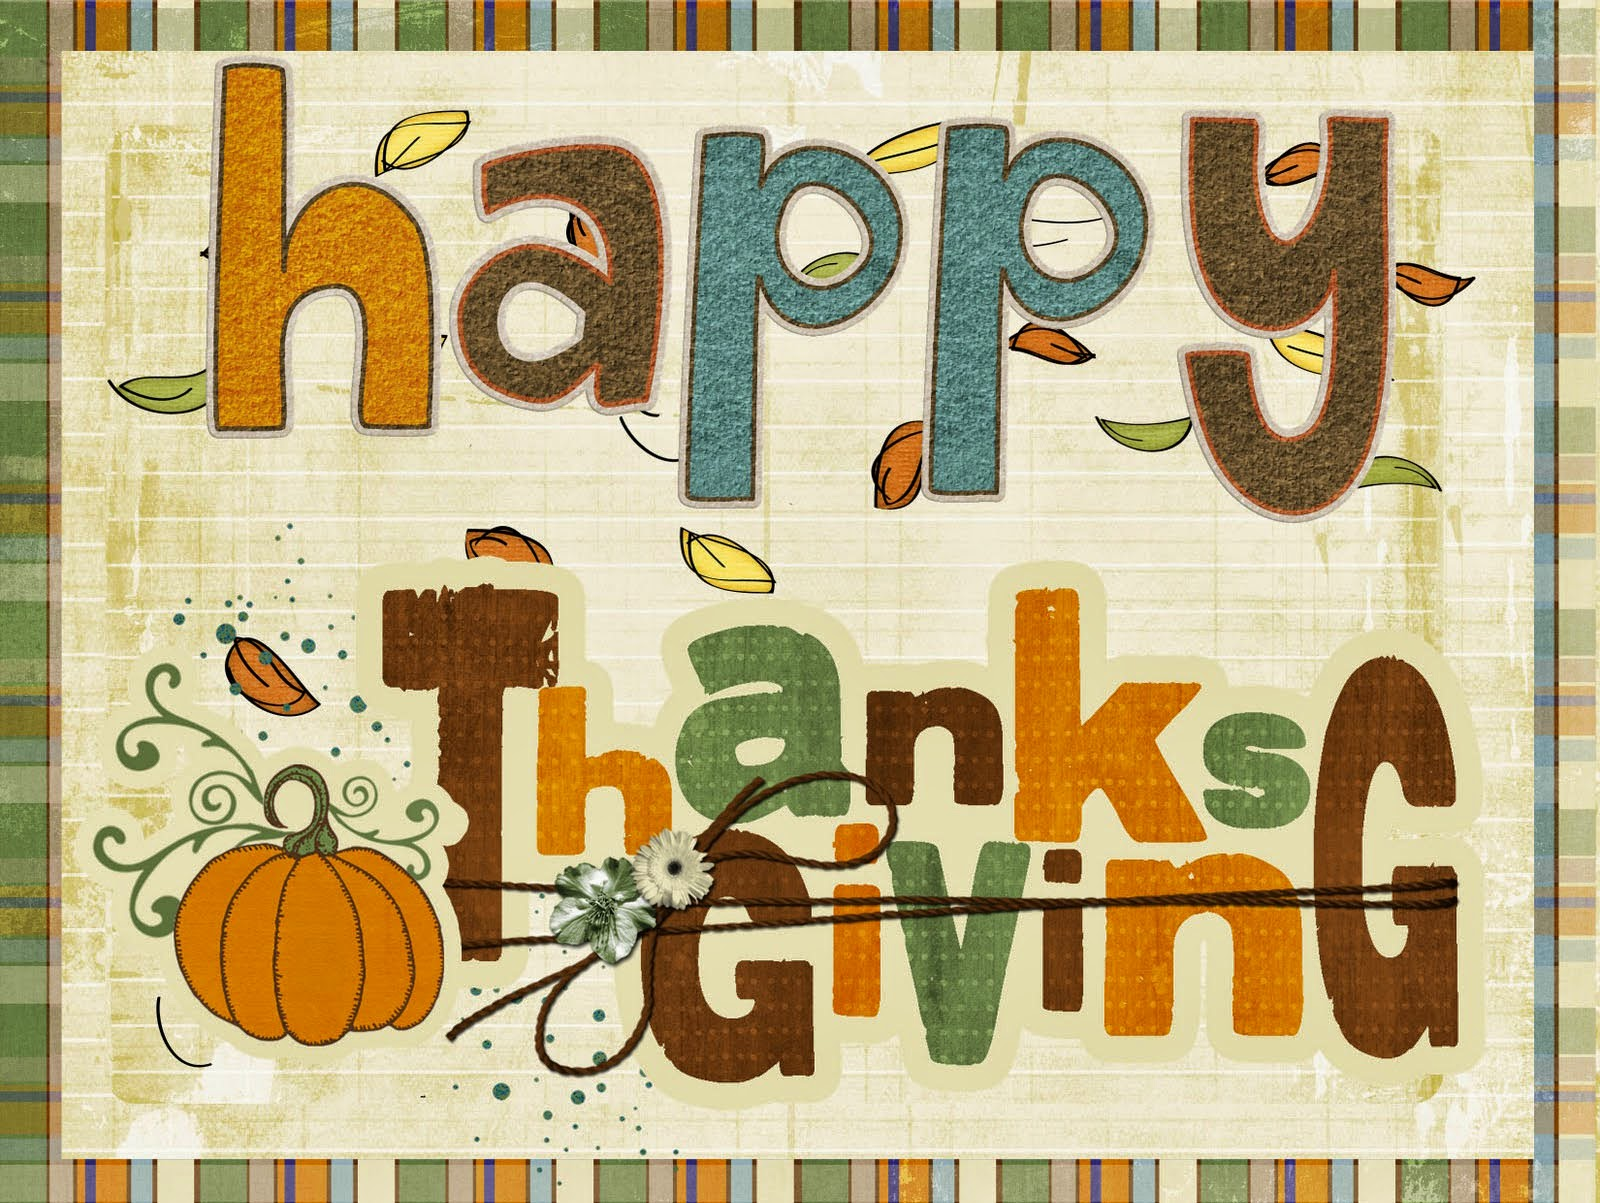 Hoping you and your family have a wonderful Thanksgiving Holiday.